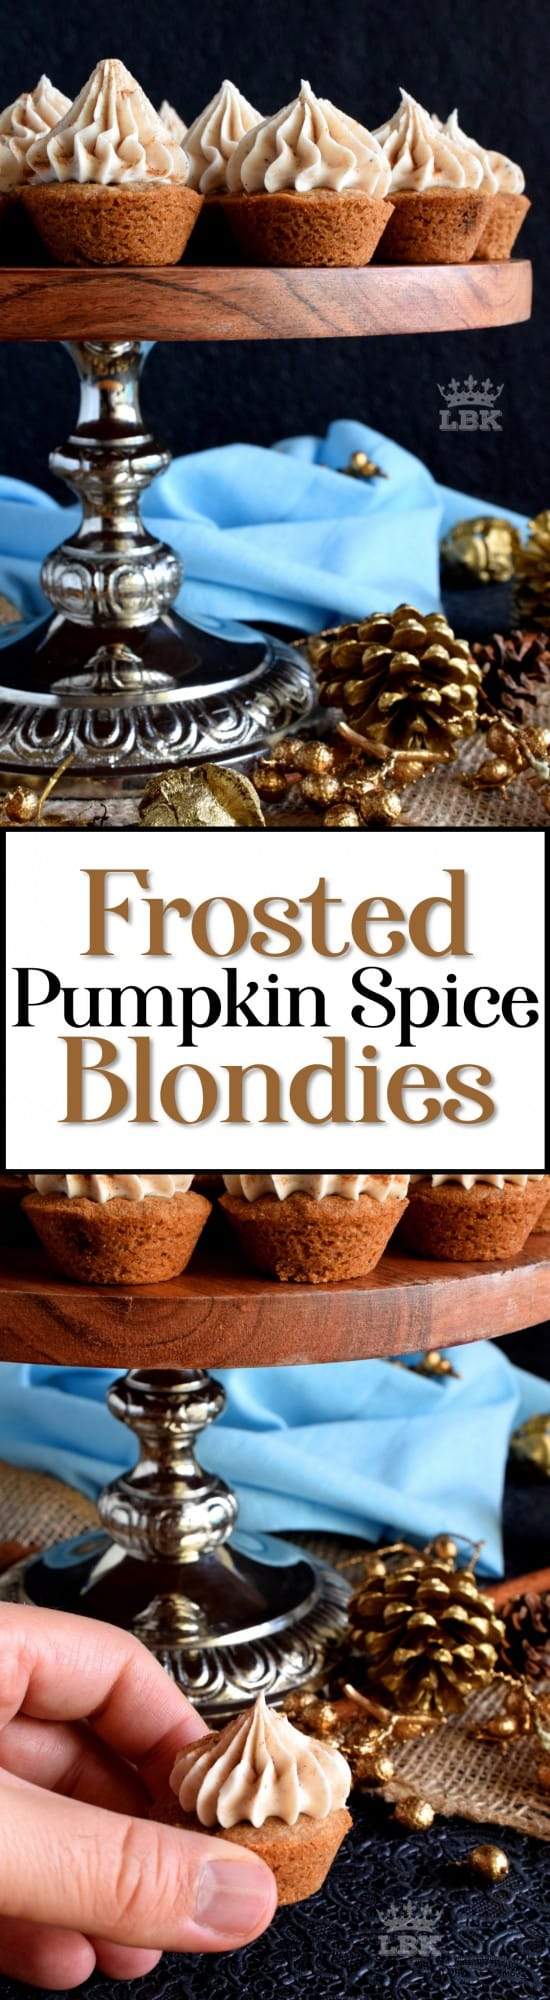 Frosted Pumpkin Spice Blondies - Perfectly portion sized, these frosted two-bite blondies are loaded with pumpkin spice flavour both on the inside and outside, and they're pretty too!#blondies #pumpkinspice #pumpkin #frosted